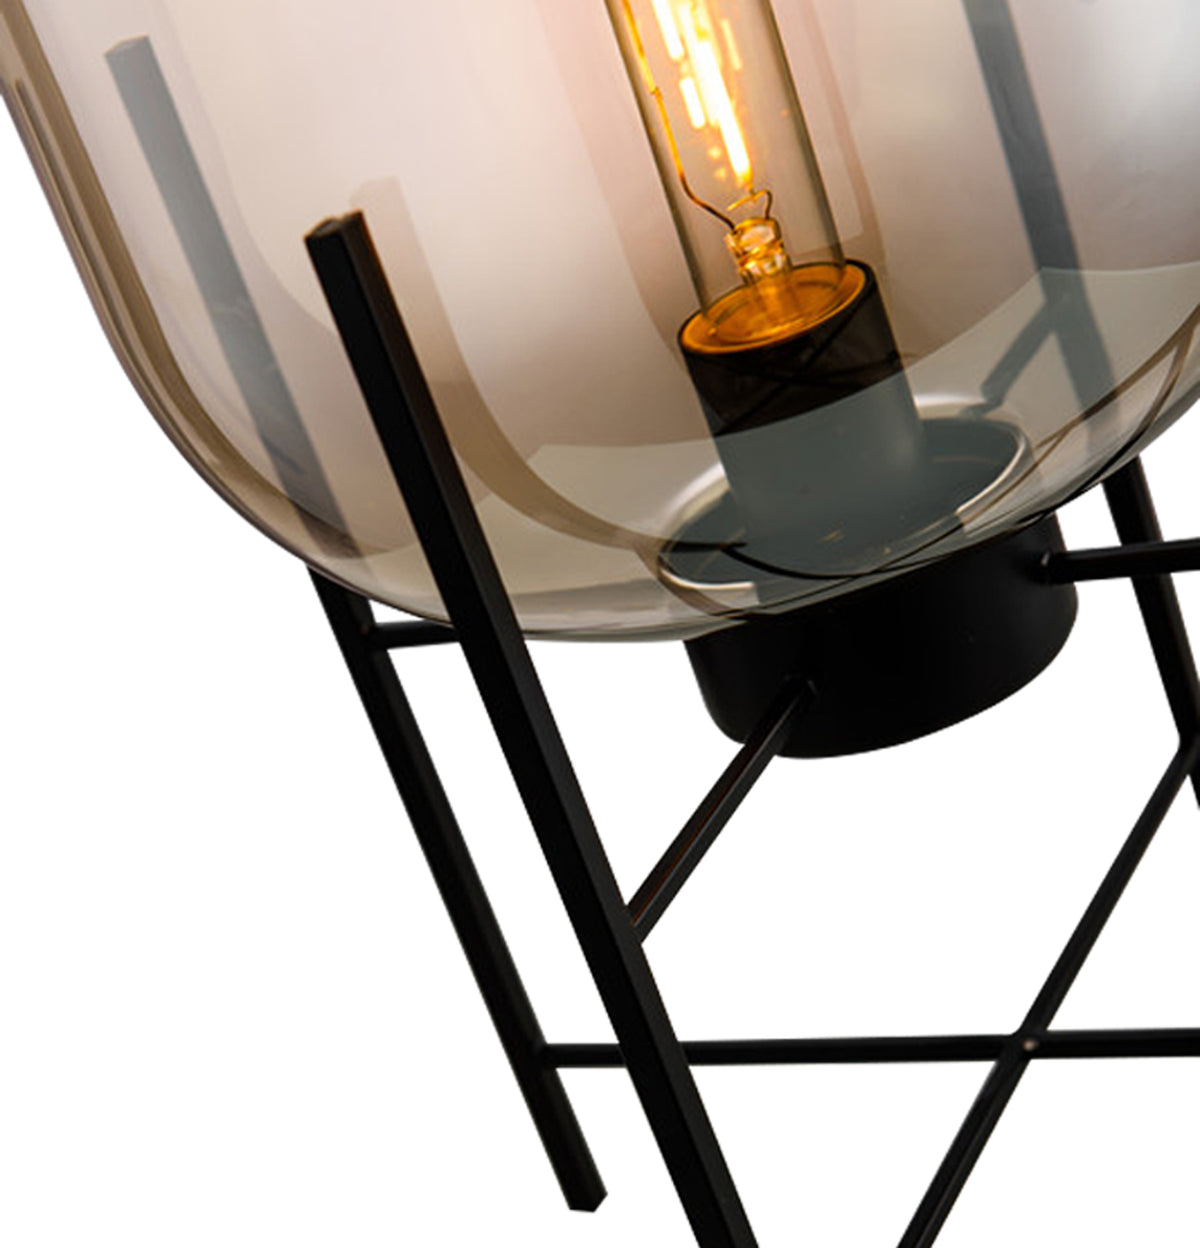 Cannula Table Lamp - objects of interest